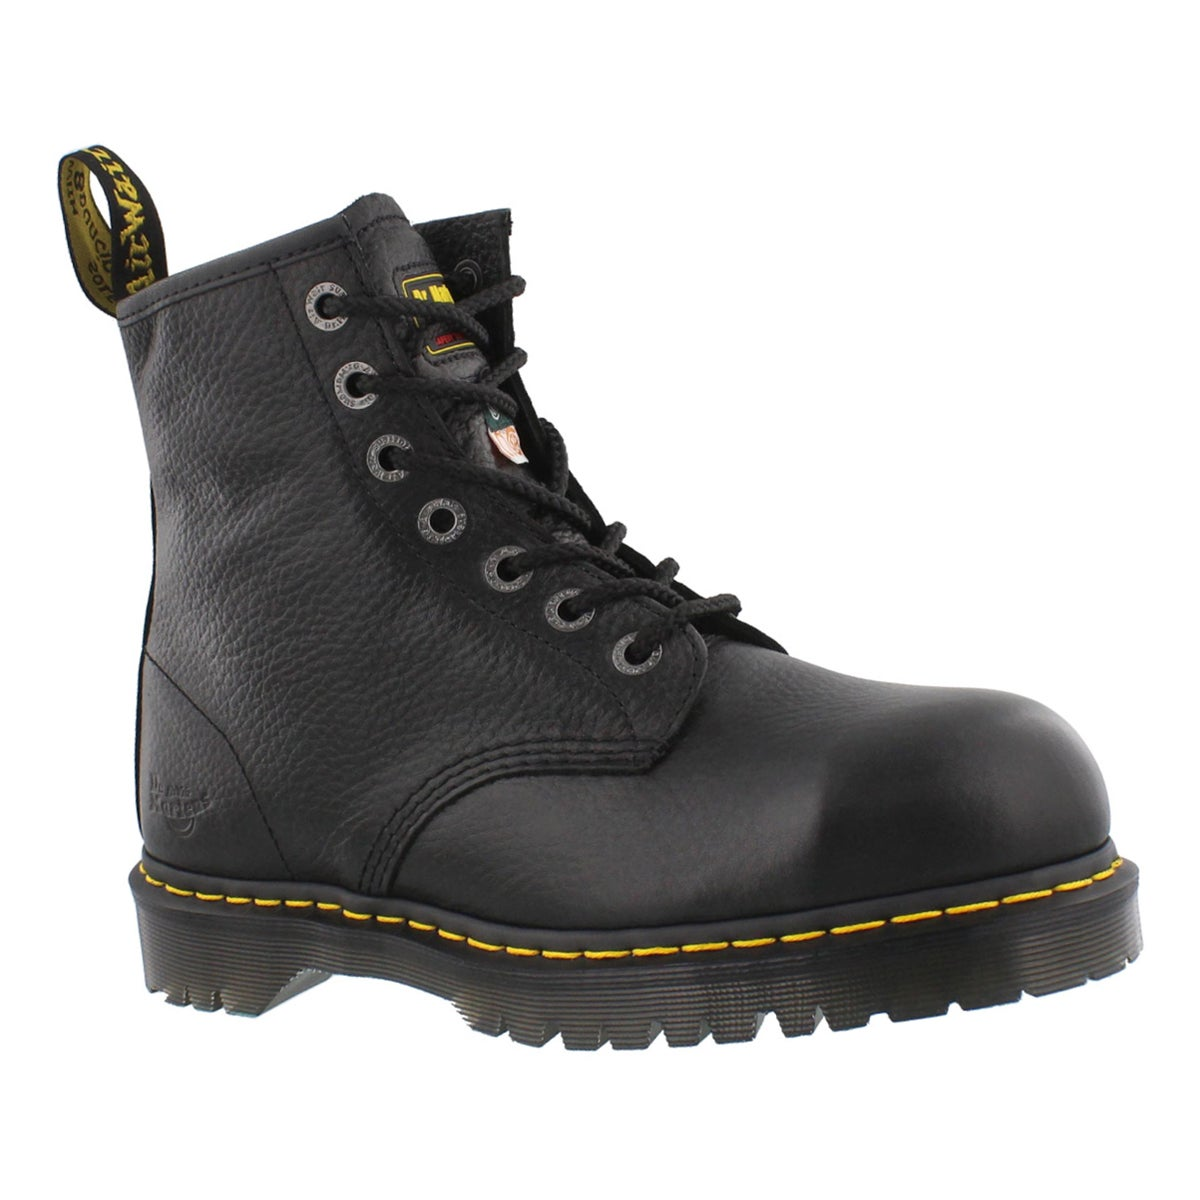 6e351c3818d Men's ICON 7B10 ST black CSA safety boots